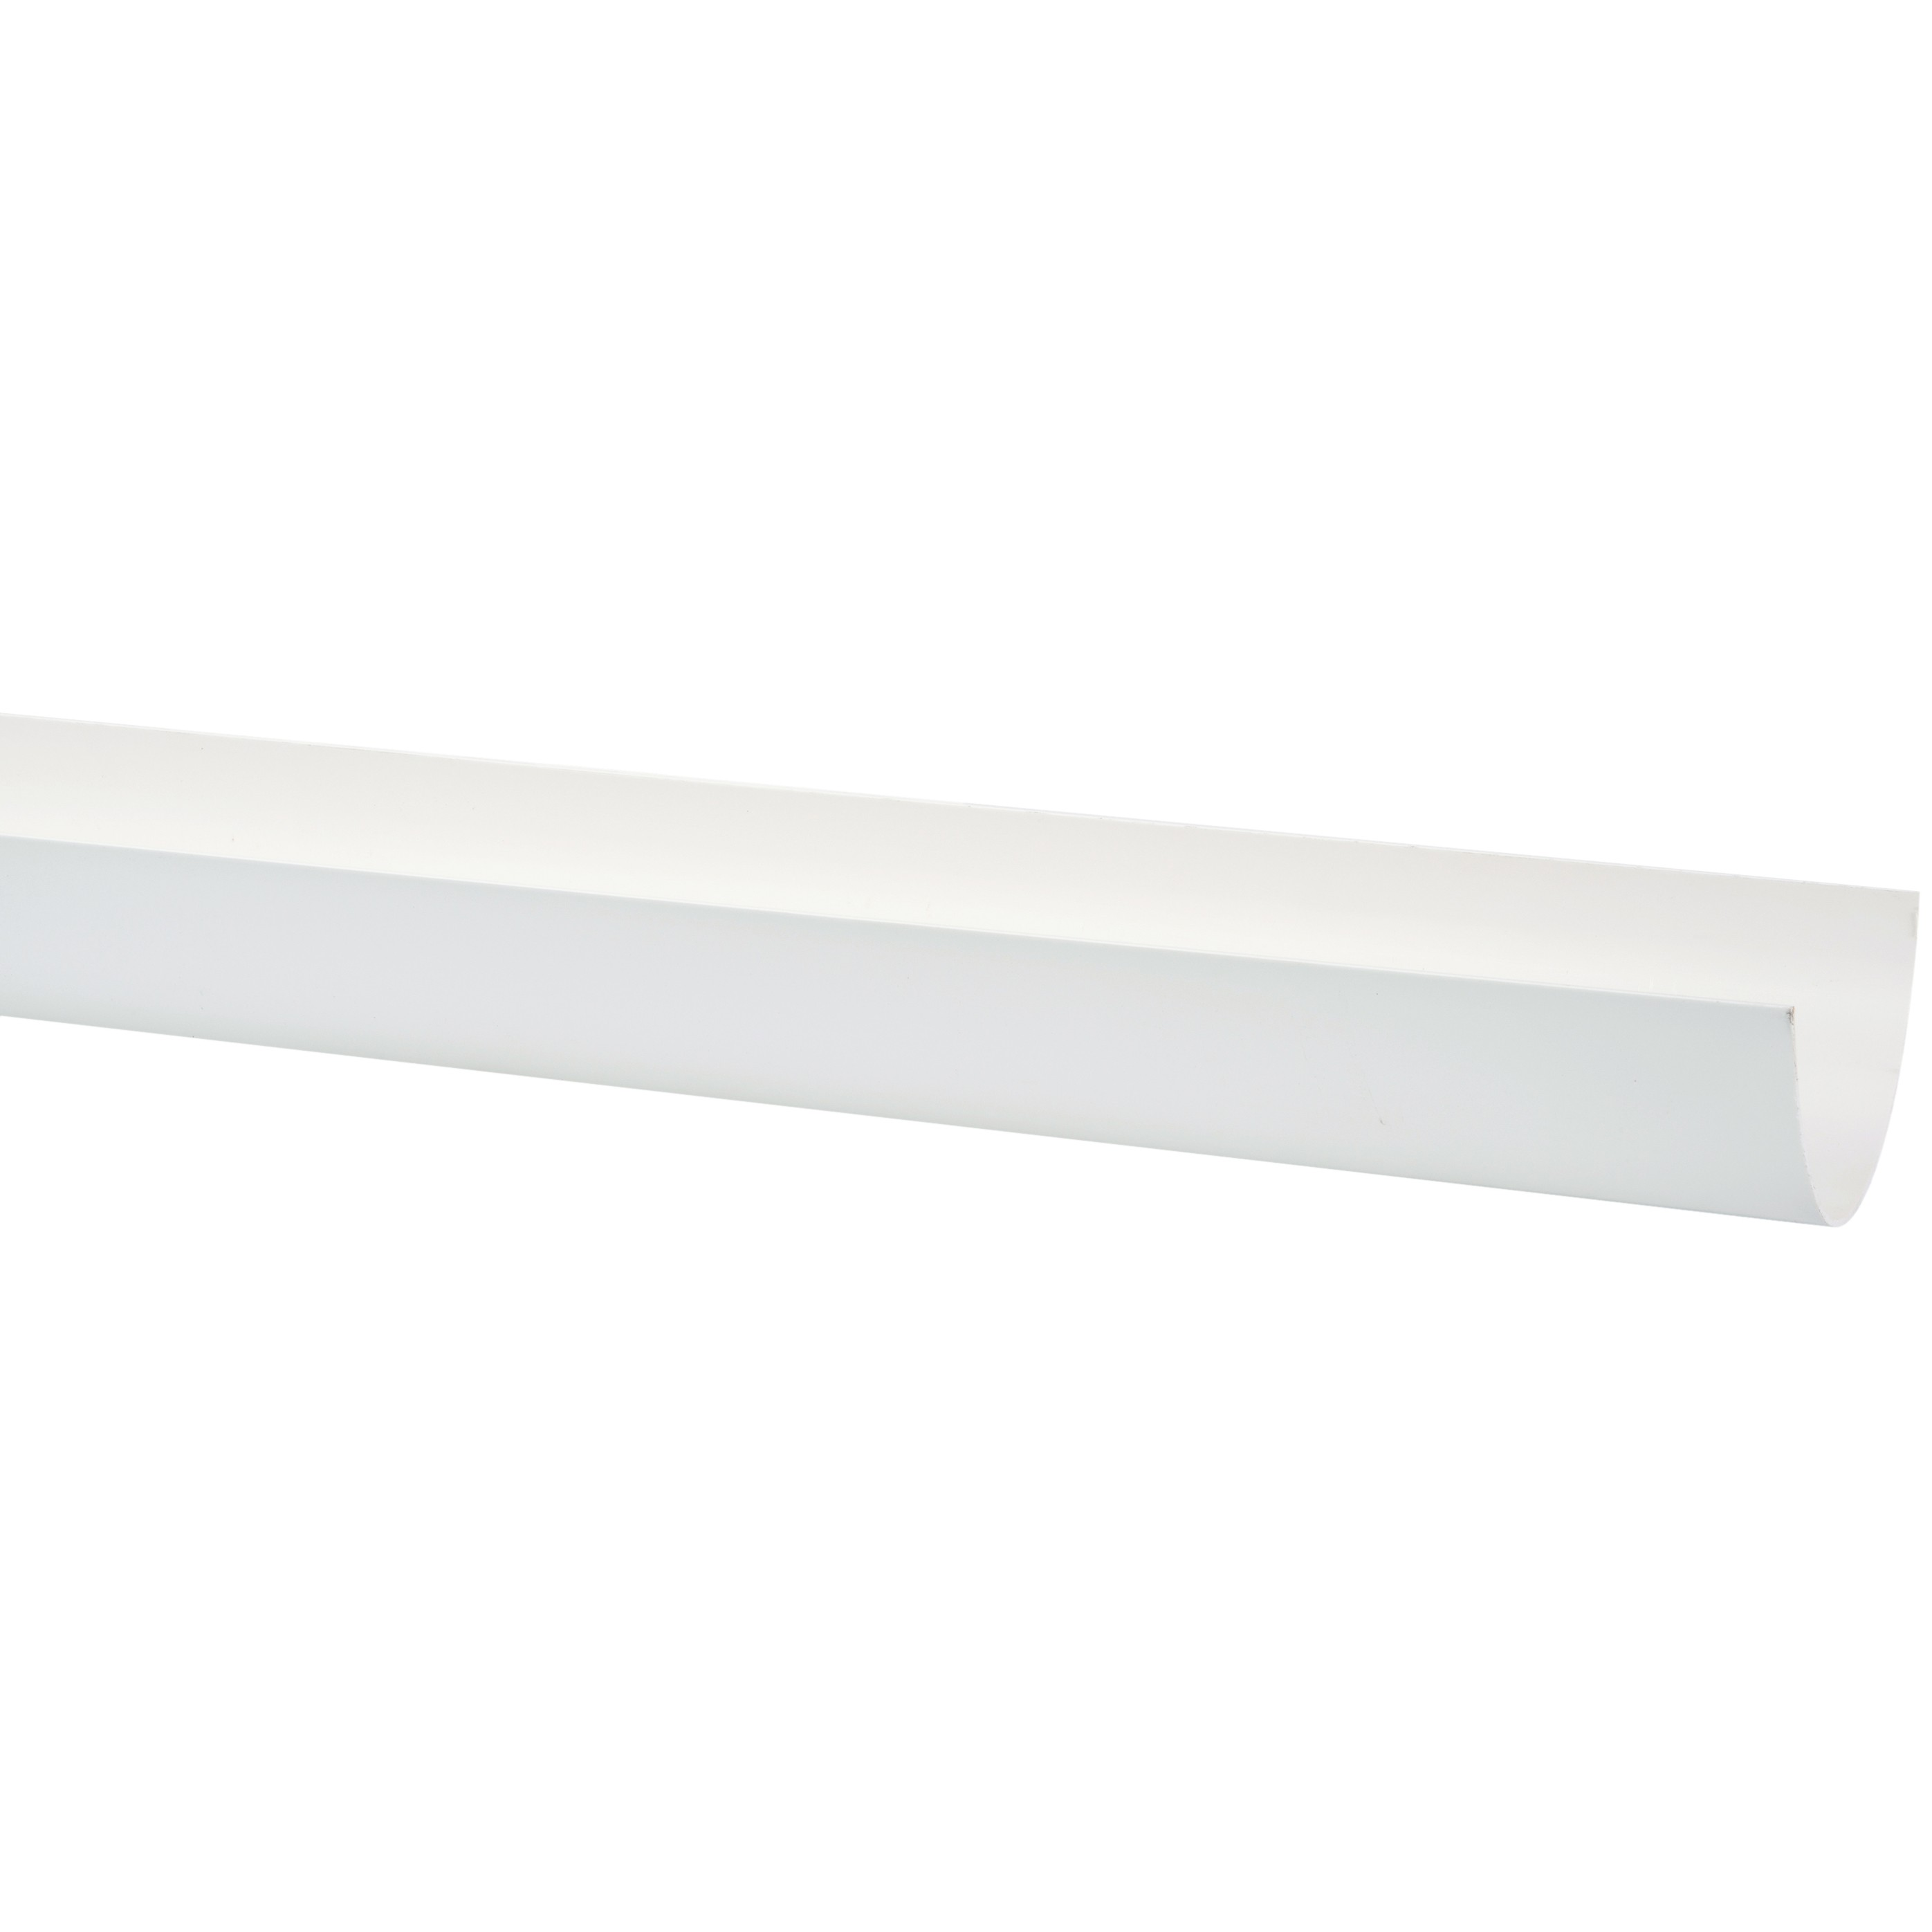 Polypipe 117mm Polyflow Deep Capacity Gutter - White, 2 metre